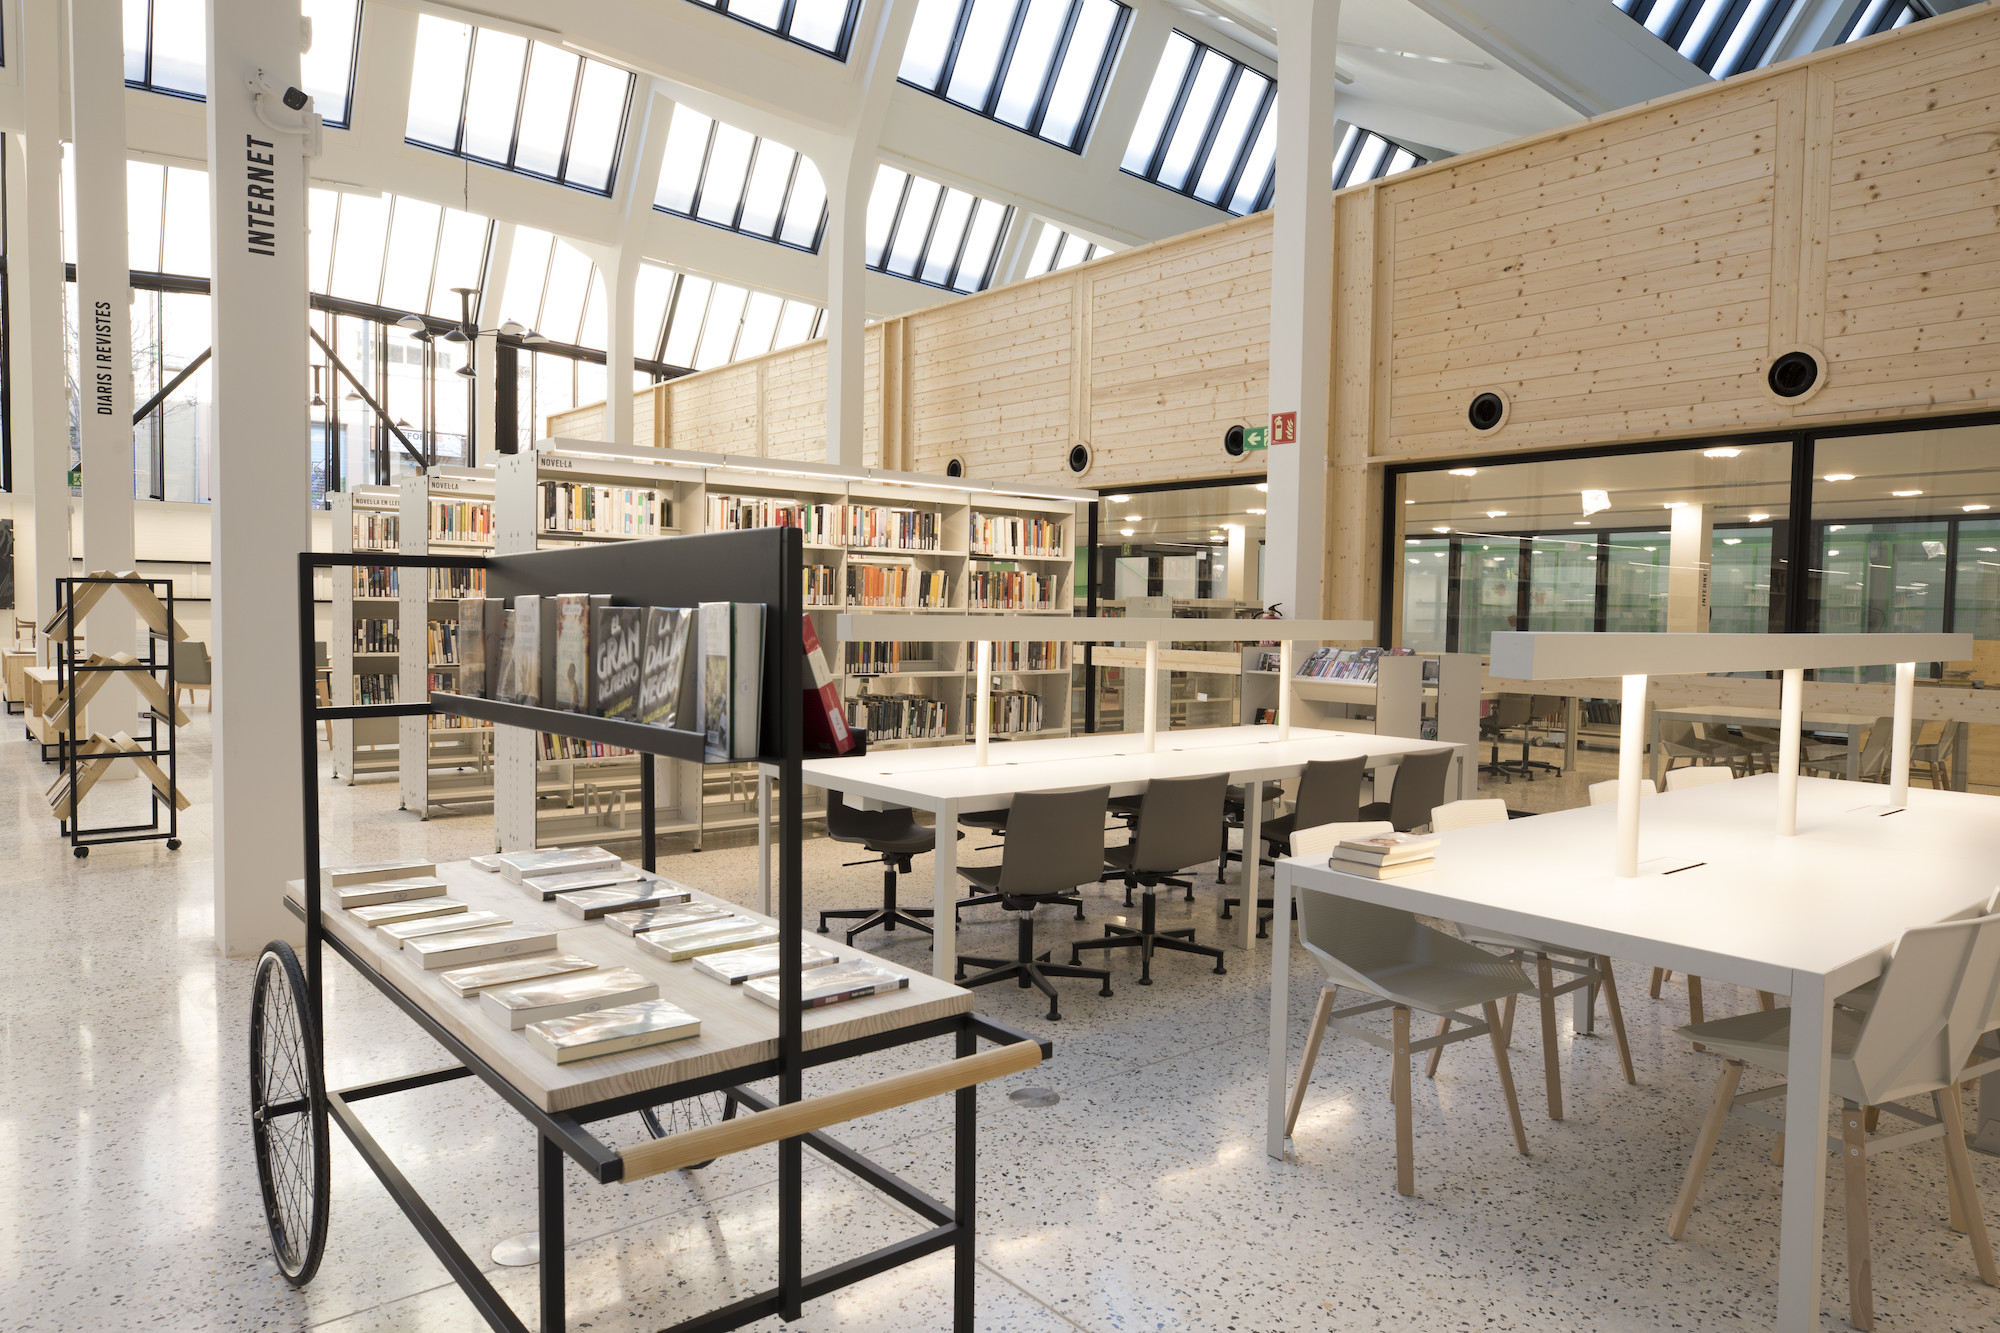 Biblioteca Montserrat Abello Barcelona library building architecture design interior view